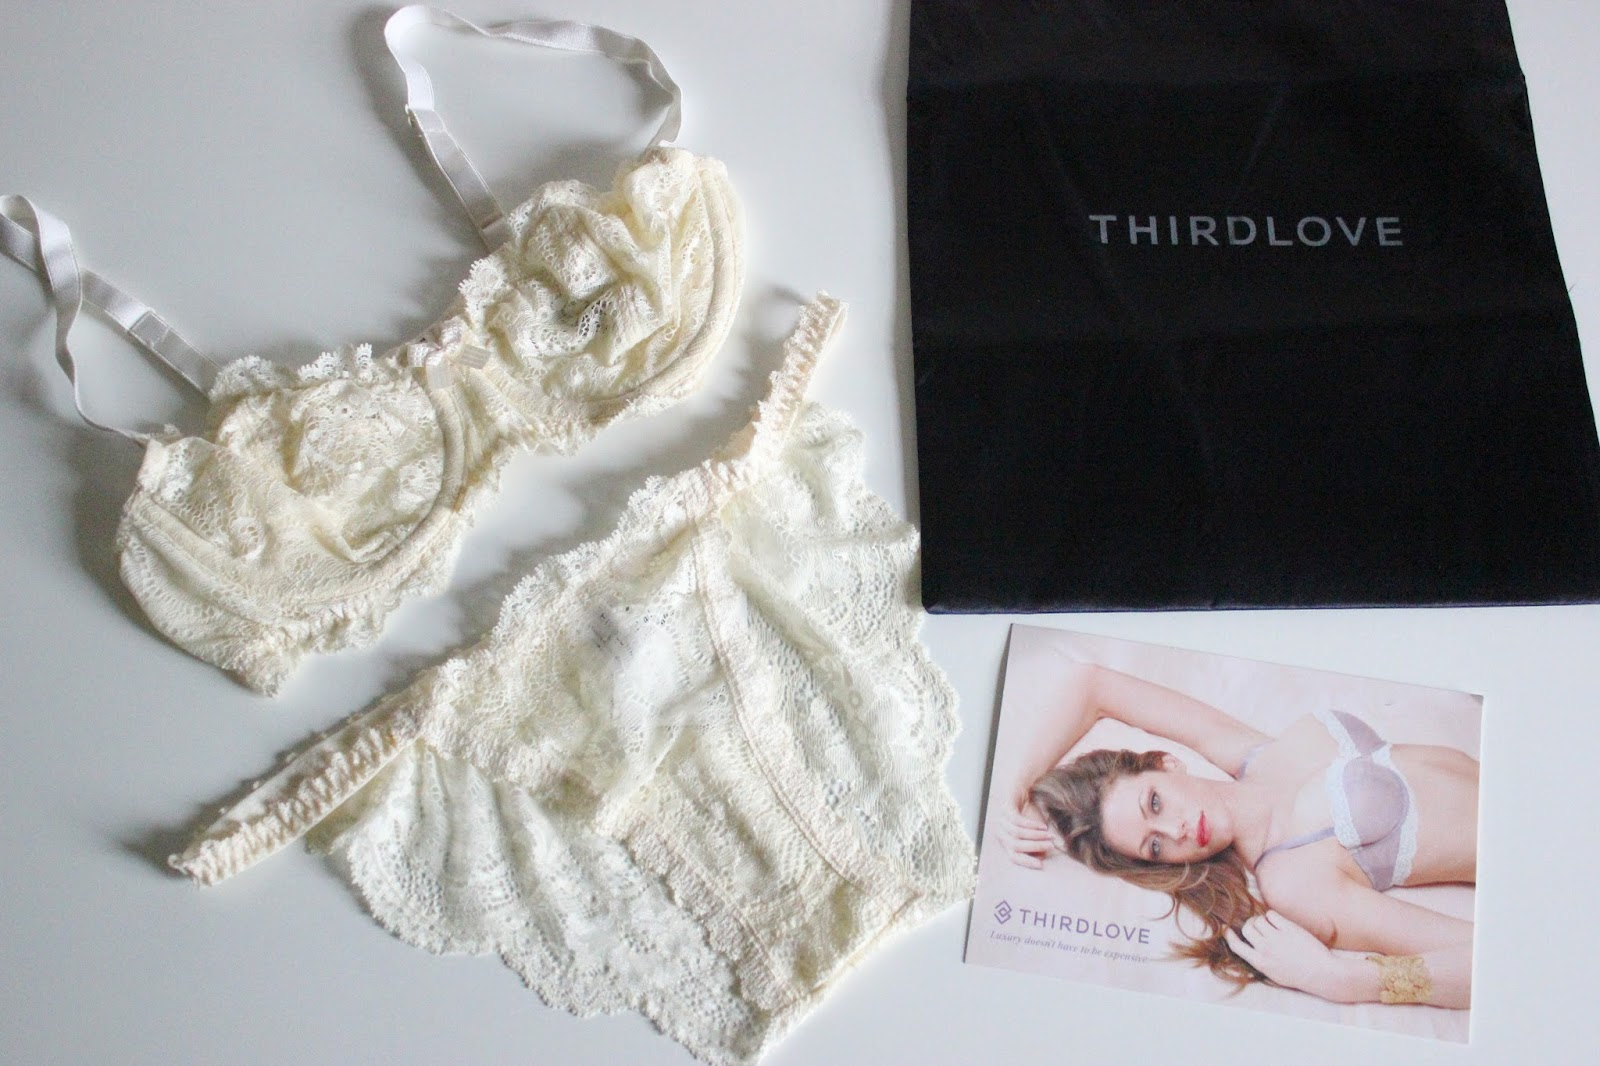 ThirdLove Review